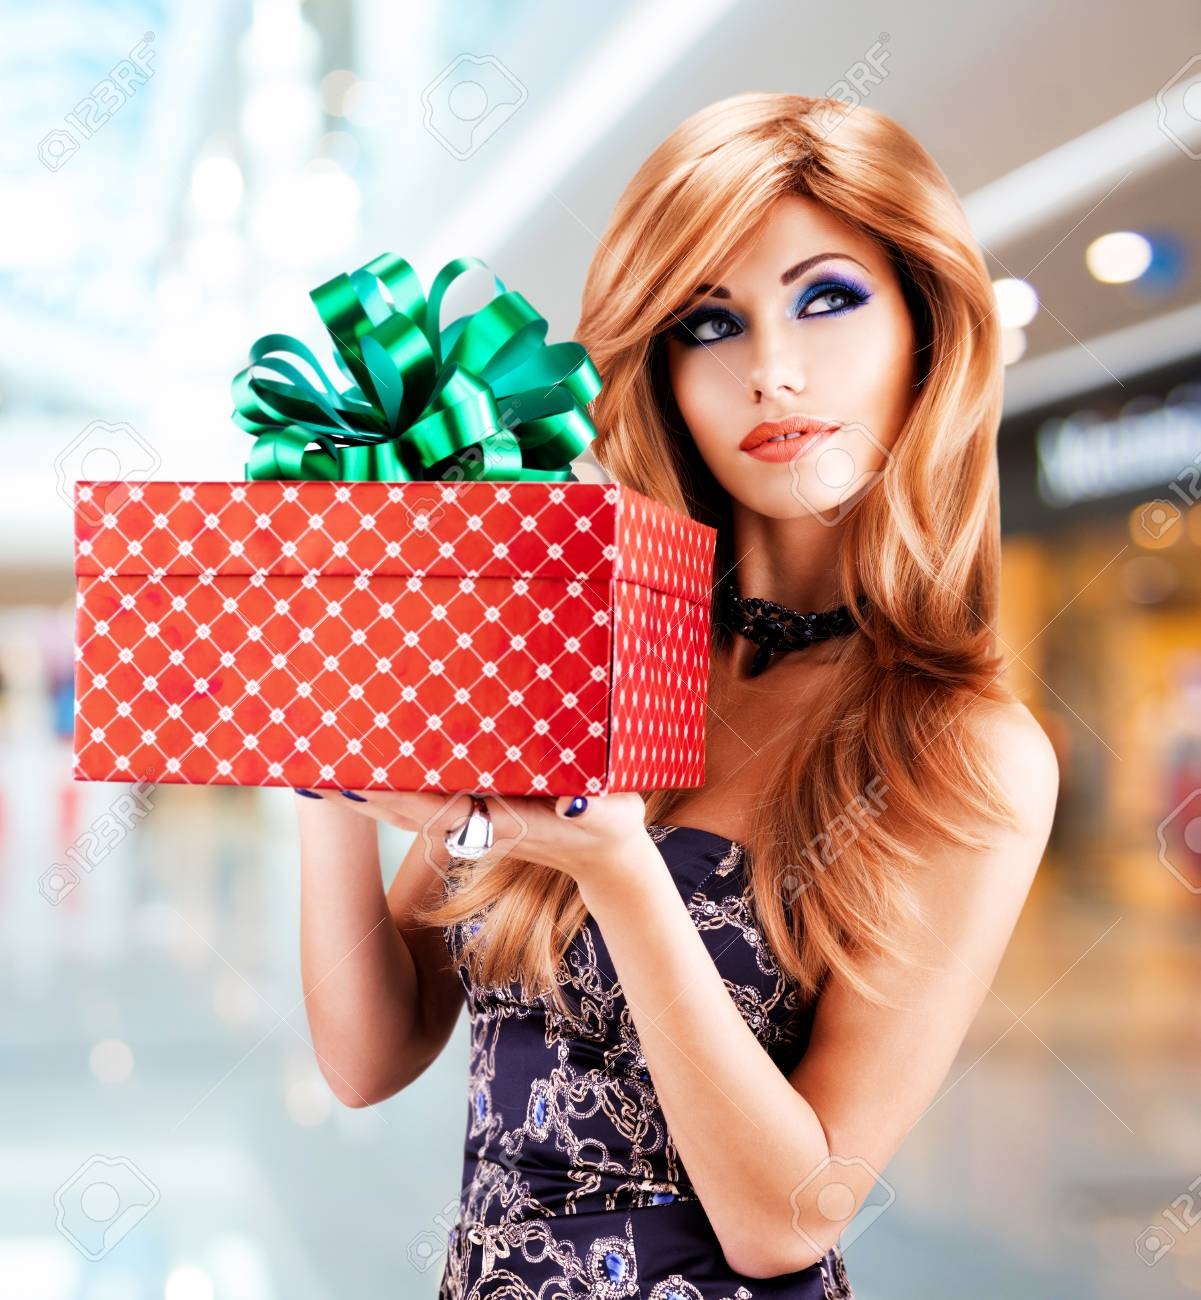 Bautiful Woman Holds The Birthday Gift Red Box With Green Ribbon